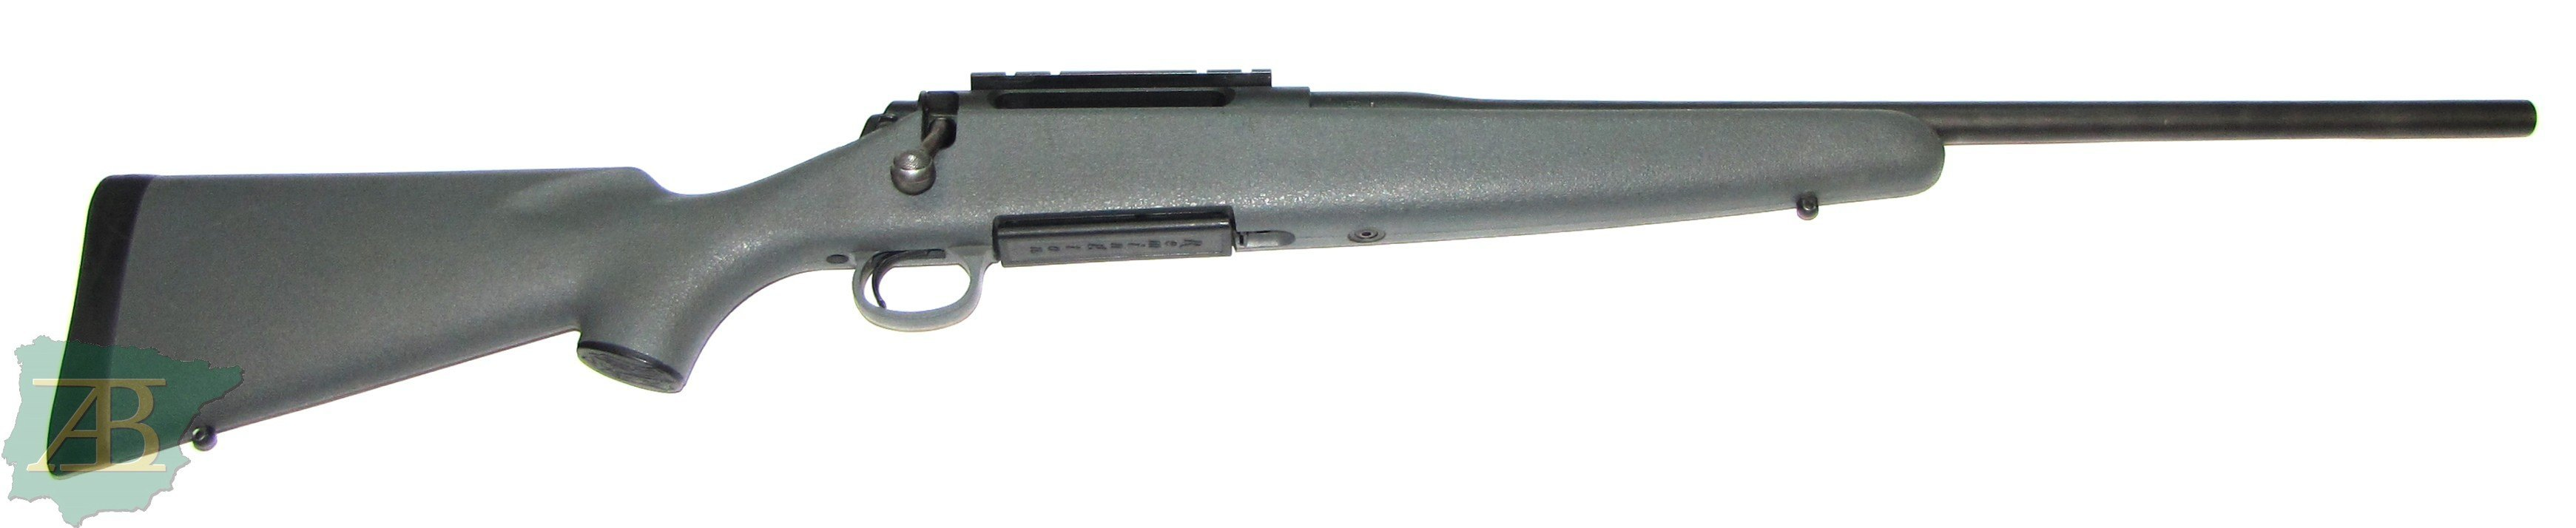 RIFLE DE CERROJO DE CAZA REMINGTON .30-06 SPRG Ref. REP2019/534